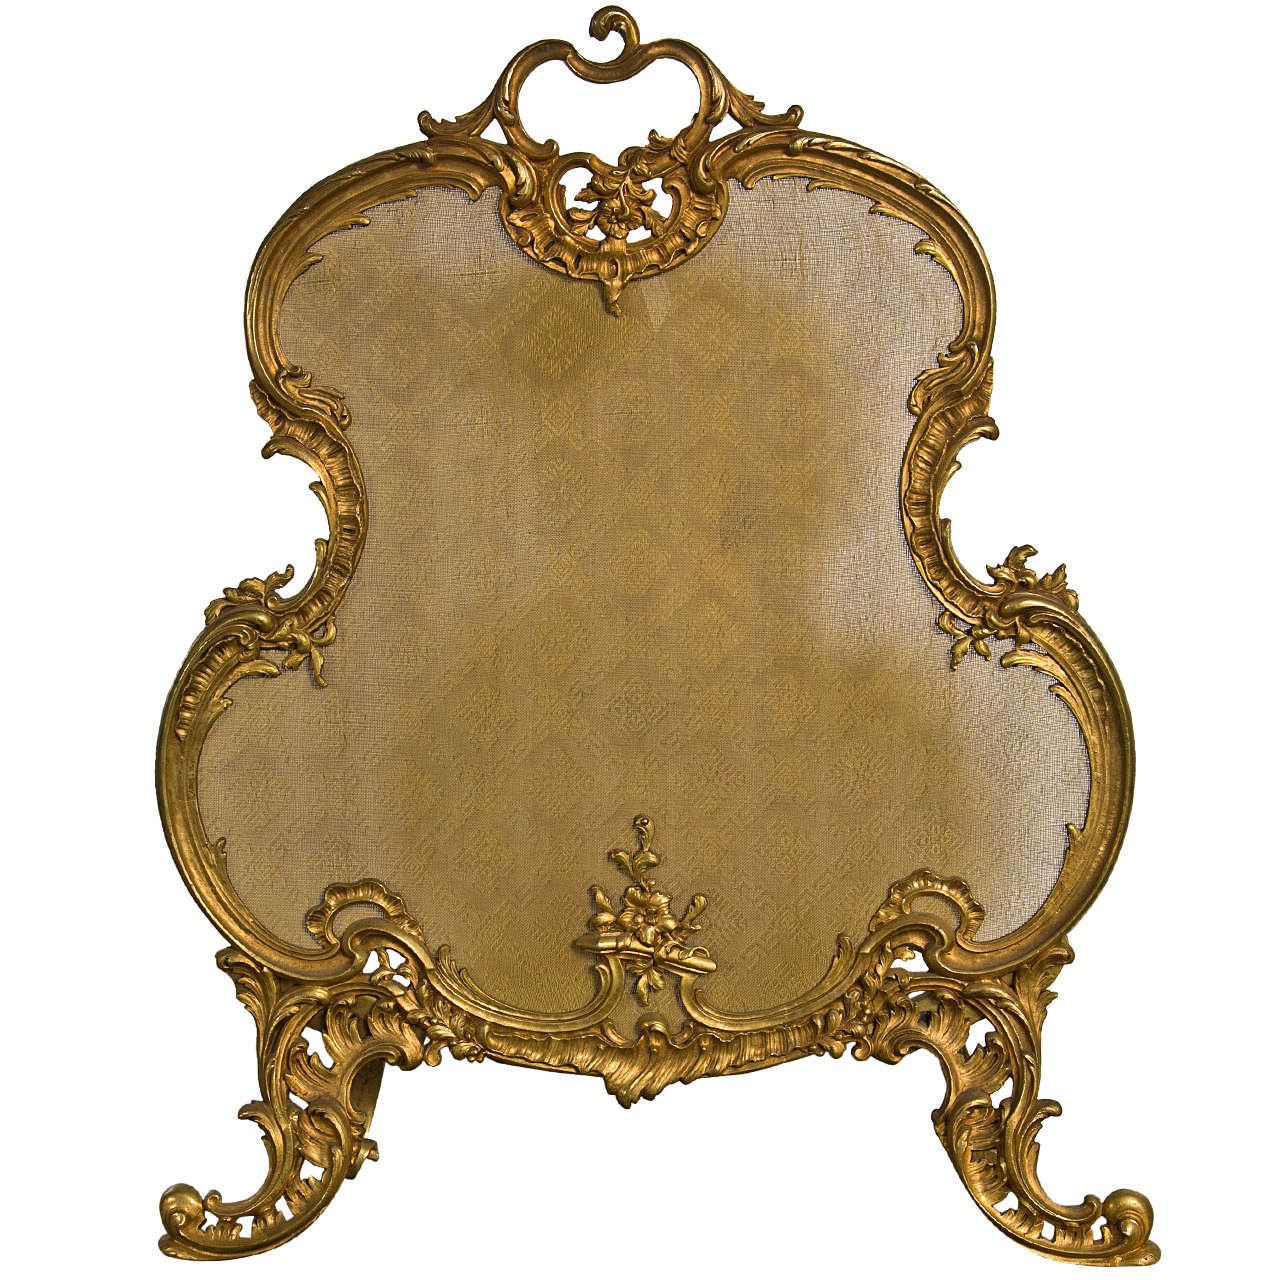 French rococo style gilt bronze fireplace fender at 1stdibs for French rococo style